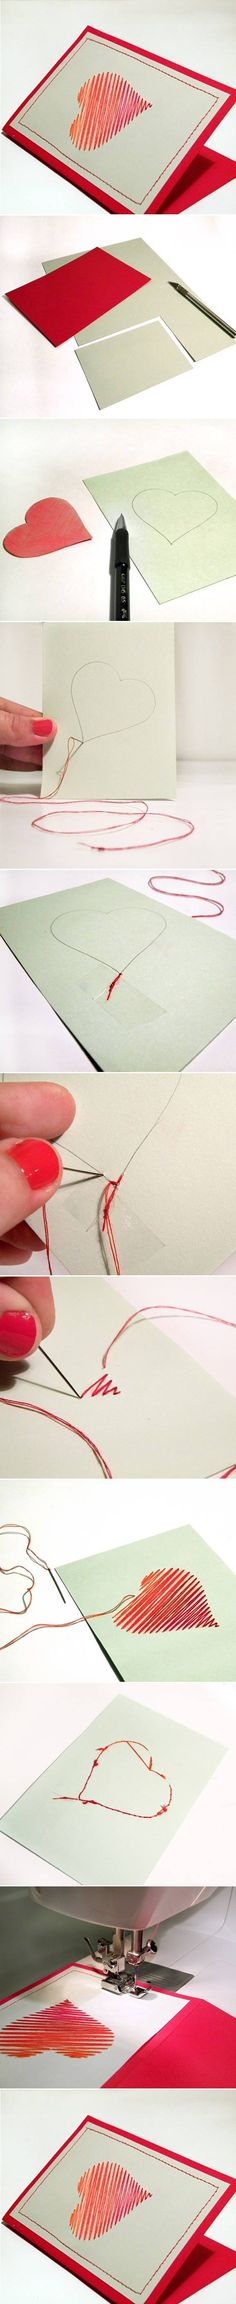 DIY Heart Card diy crafts home made easy crafts craft idea crafts ideas diy ideas diy crafts diy idea do it yourself diy projects diy craft handmade diy sewing diy gifts craft gifts Diy Crafts Yard, Diy And Crafts Sewing, Diy Home Crafts, Easy Diy Crafts, Sewing Diy, Craft Gifts, Diy Gifts, Scrapbooking, Heart Cards